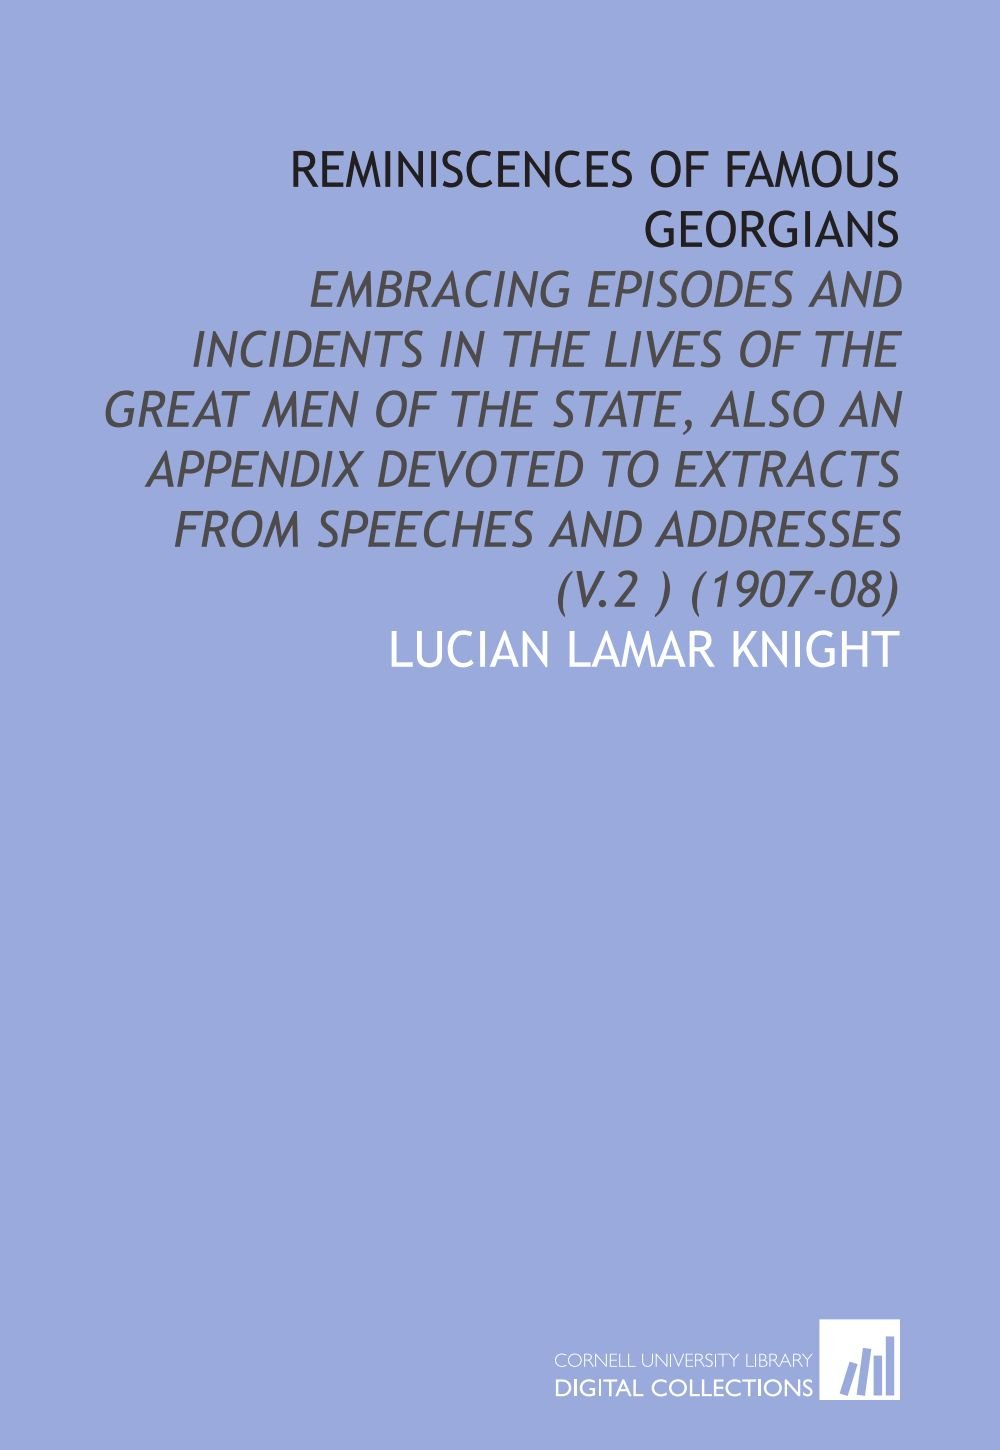 Download Reminiscences of Famous Georgians: Embracing Episodes and Incidents in the Lives of the Great Men of the State, Also an Appendix Devoted to Extracts From Speeches and Addresses (V.2 ) (1907-08) pdf